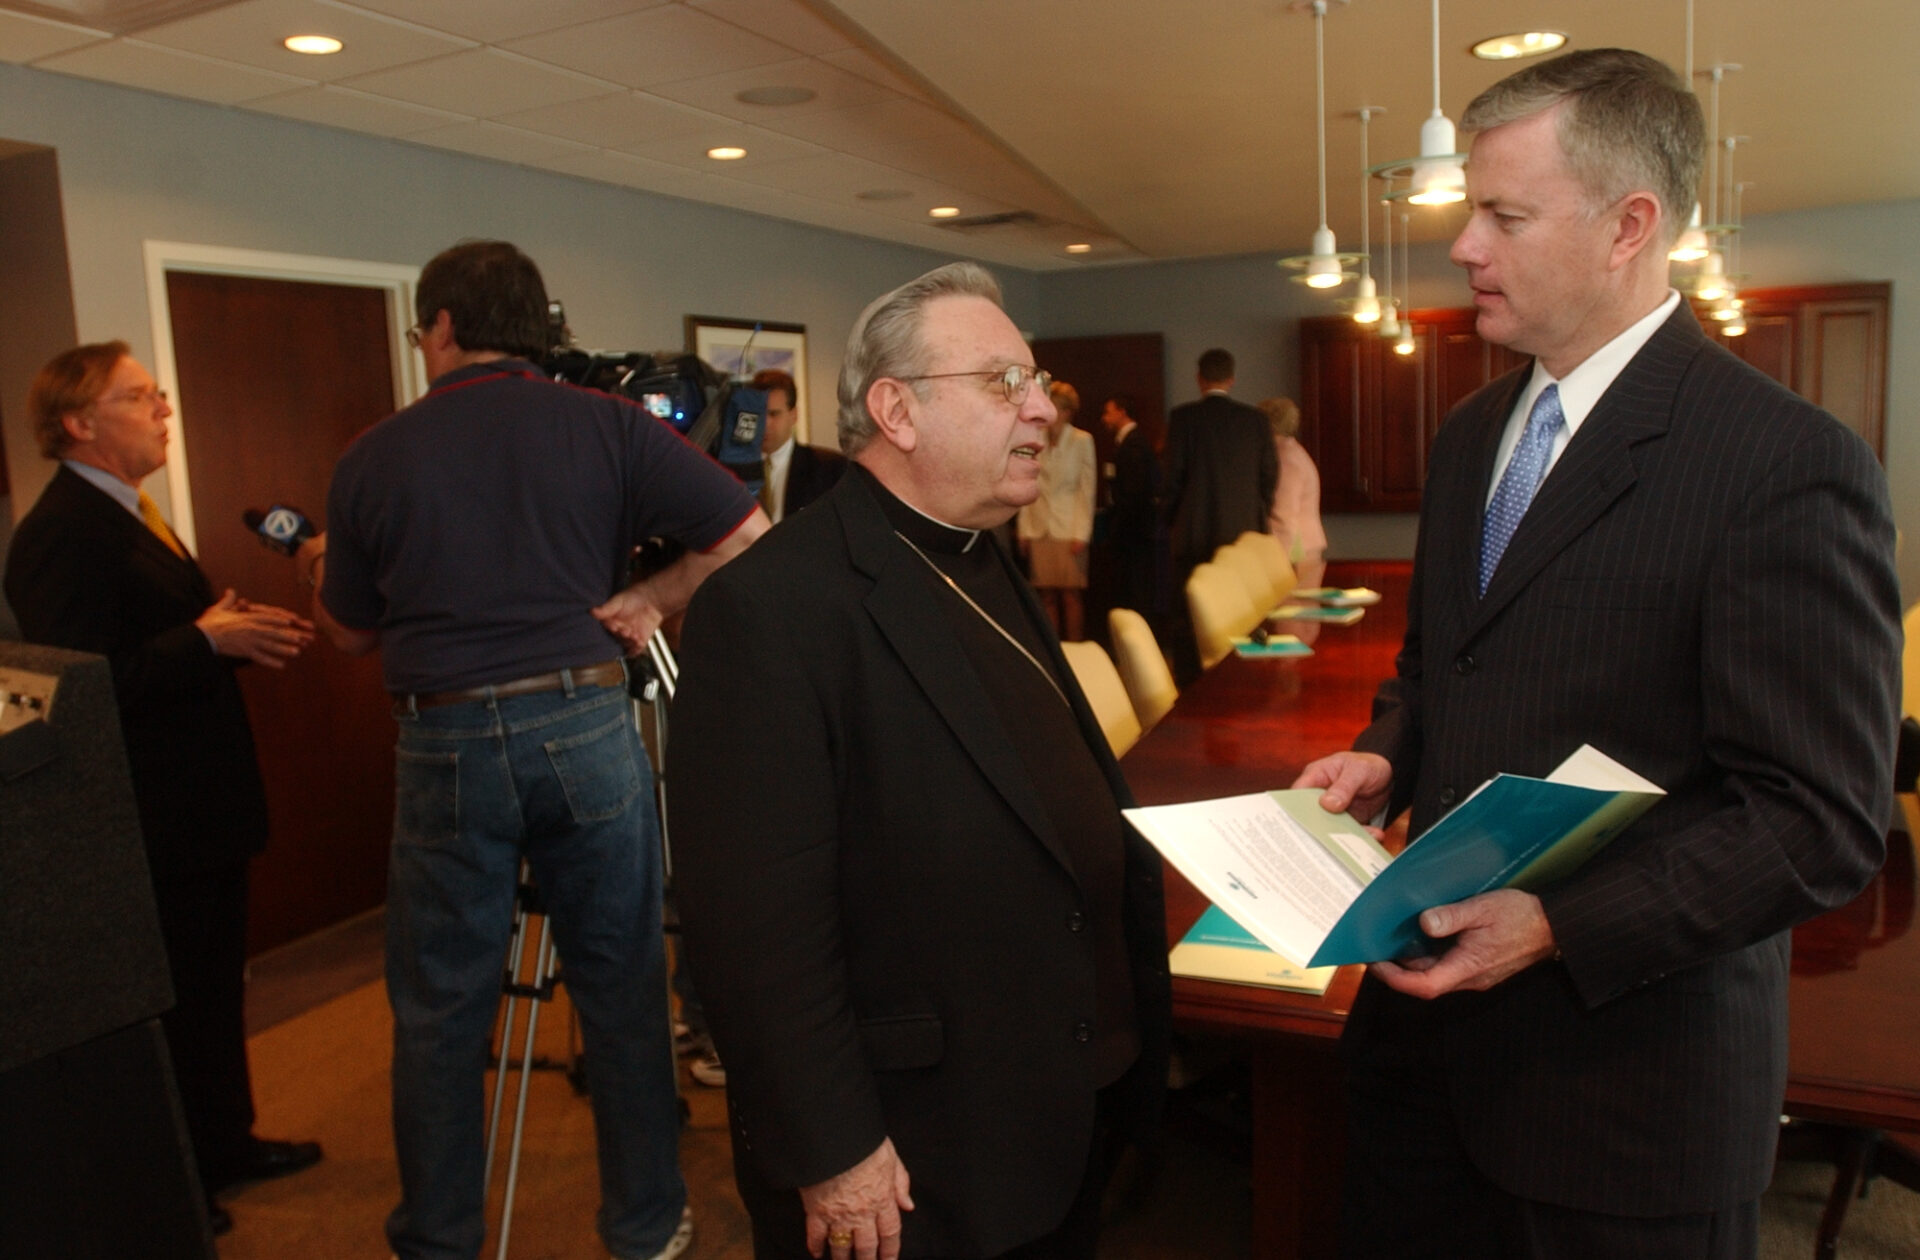 20060504 / STORY / Week in Comm04 / Photo by Patrick McPartland /  As Director of Communications Kevin Keenan advises Bishop Edward U. Kmiec on relating to the media.